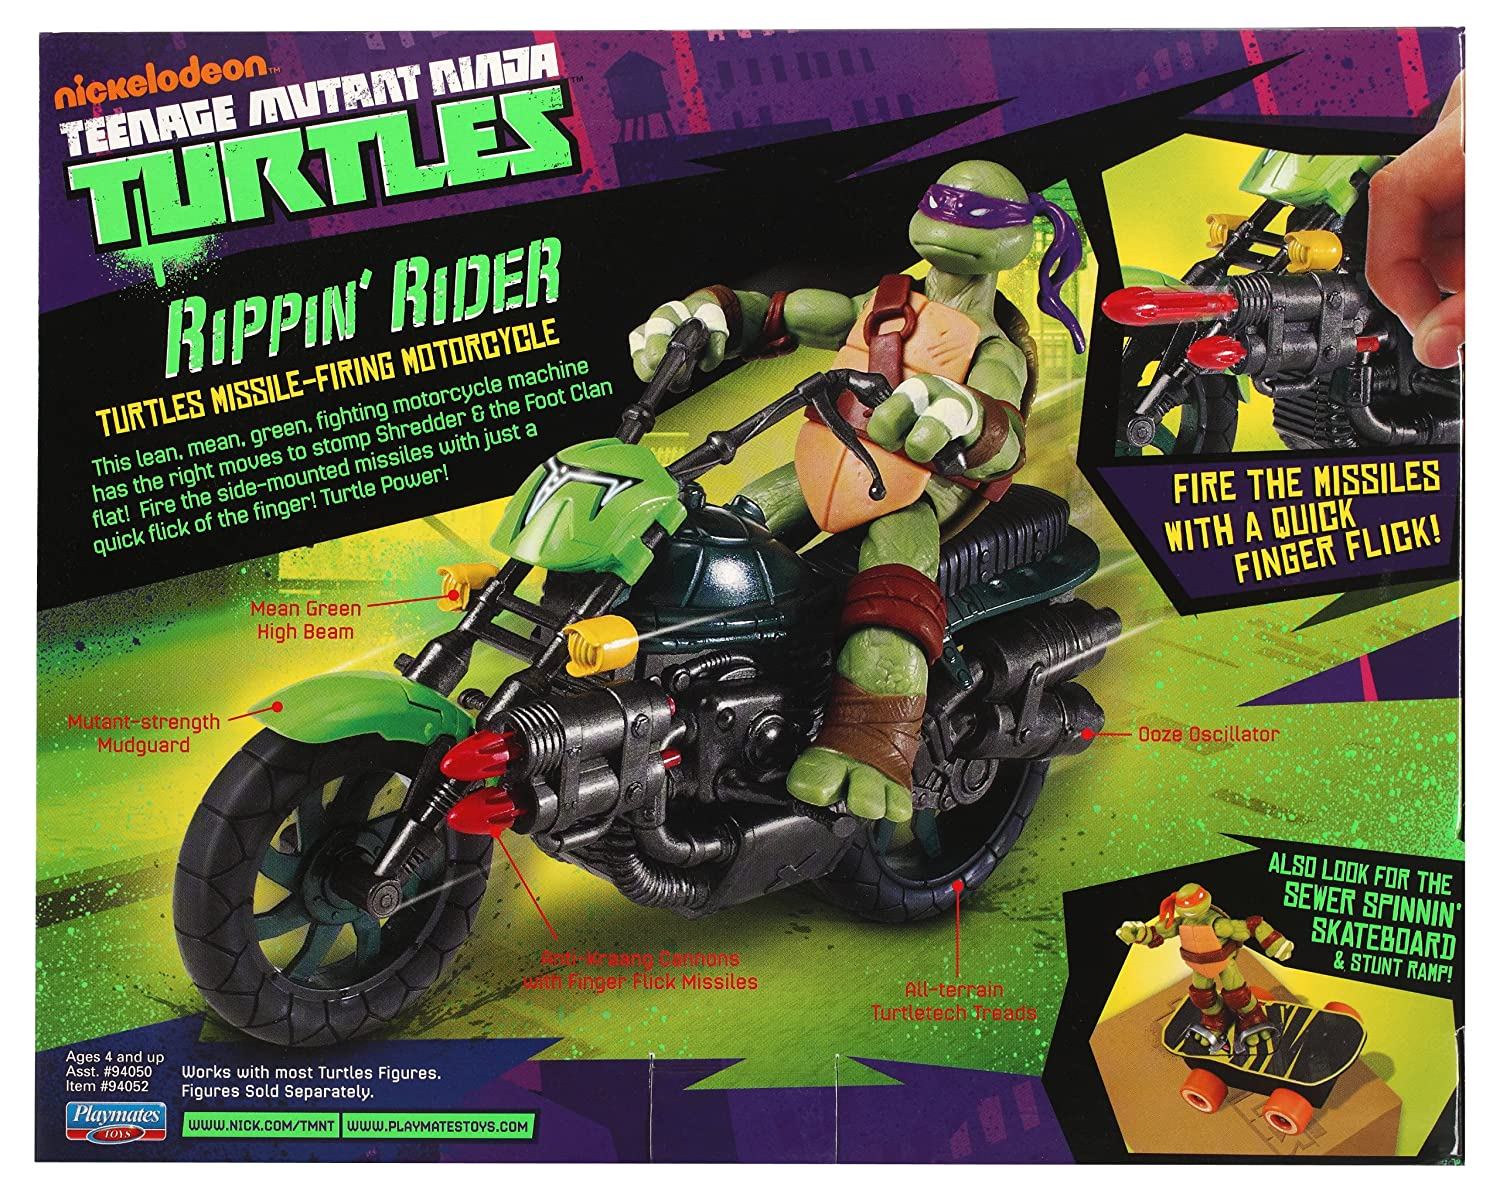 Amazon.com: Teenage Mutant Ninja Turtles Rippin Rider: Toys ...